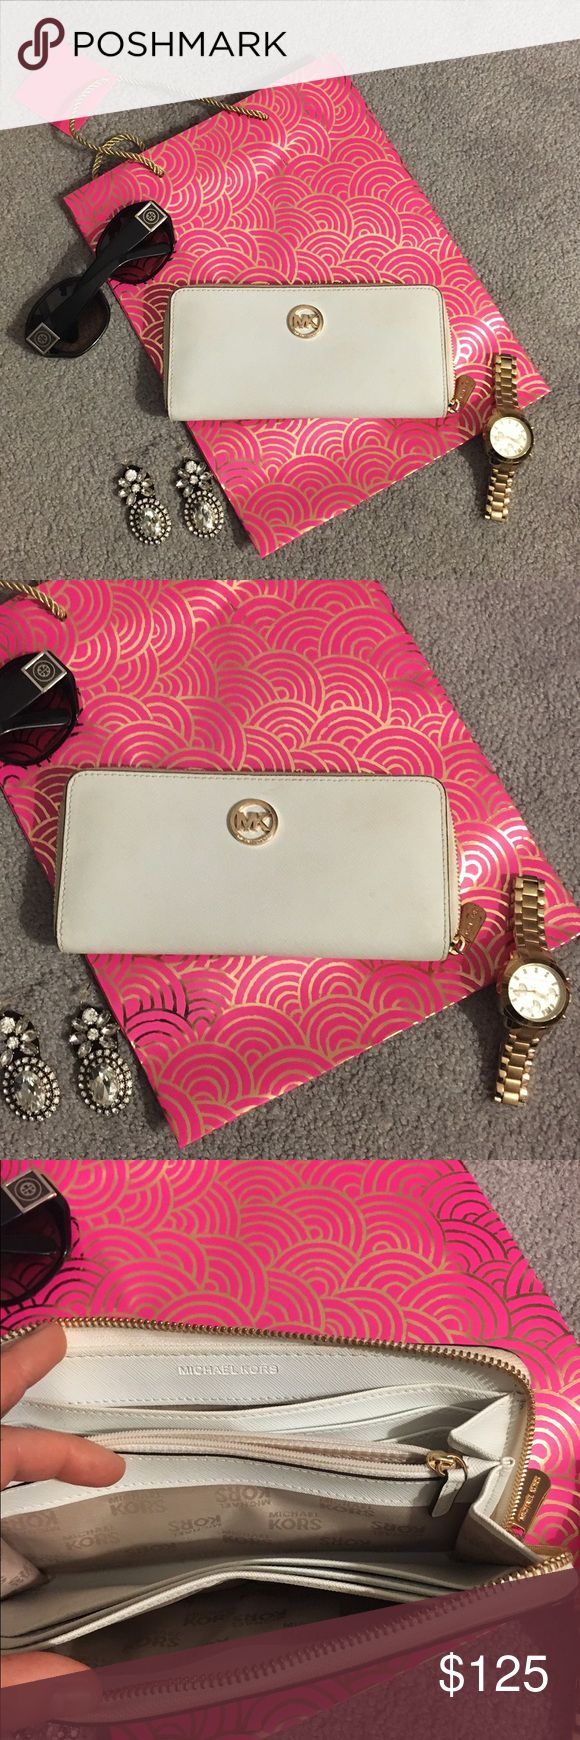 Authentic White leather Michael Kors wallet White Michael Kors wallet. Reasonable offers welcome. Michael Kors watch also up for grabs! Any questions, let me know! Measurements about 8' x 4' inches. Michael Kors Bags Wallets